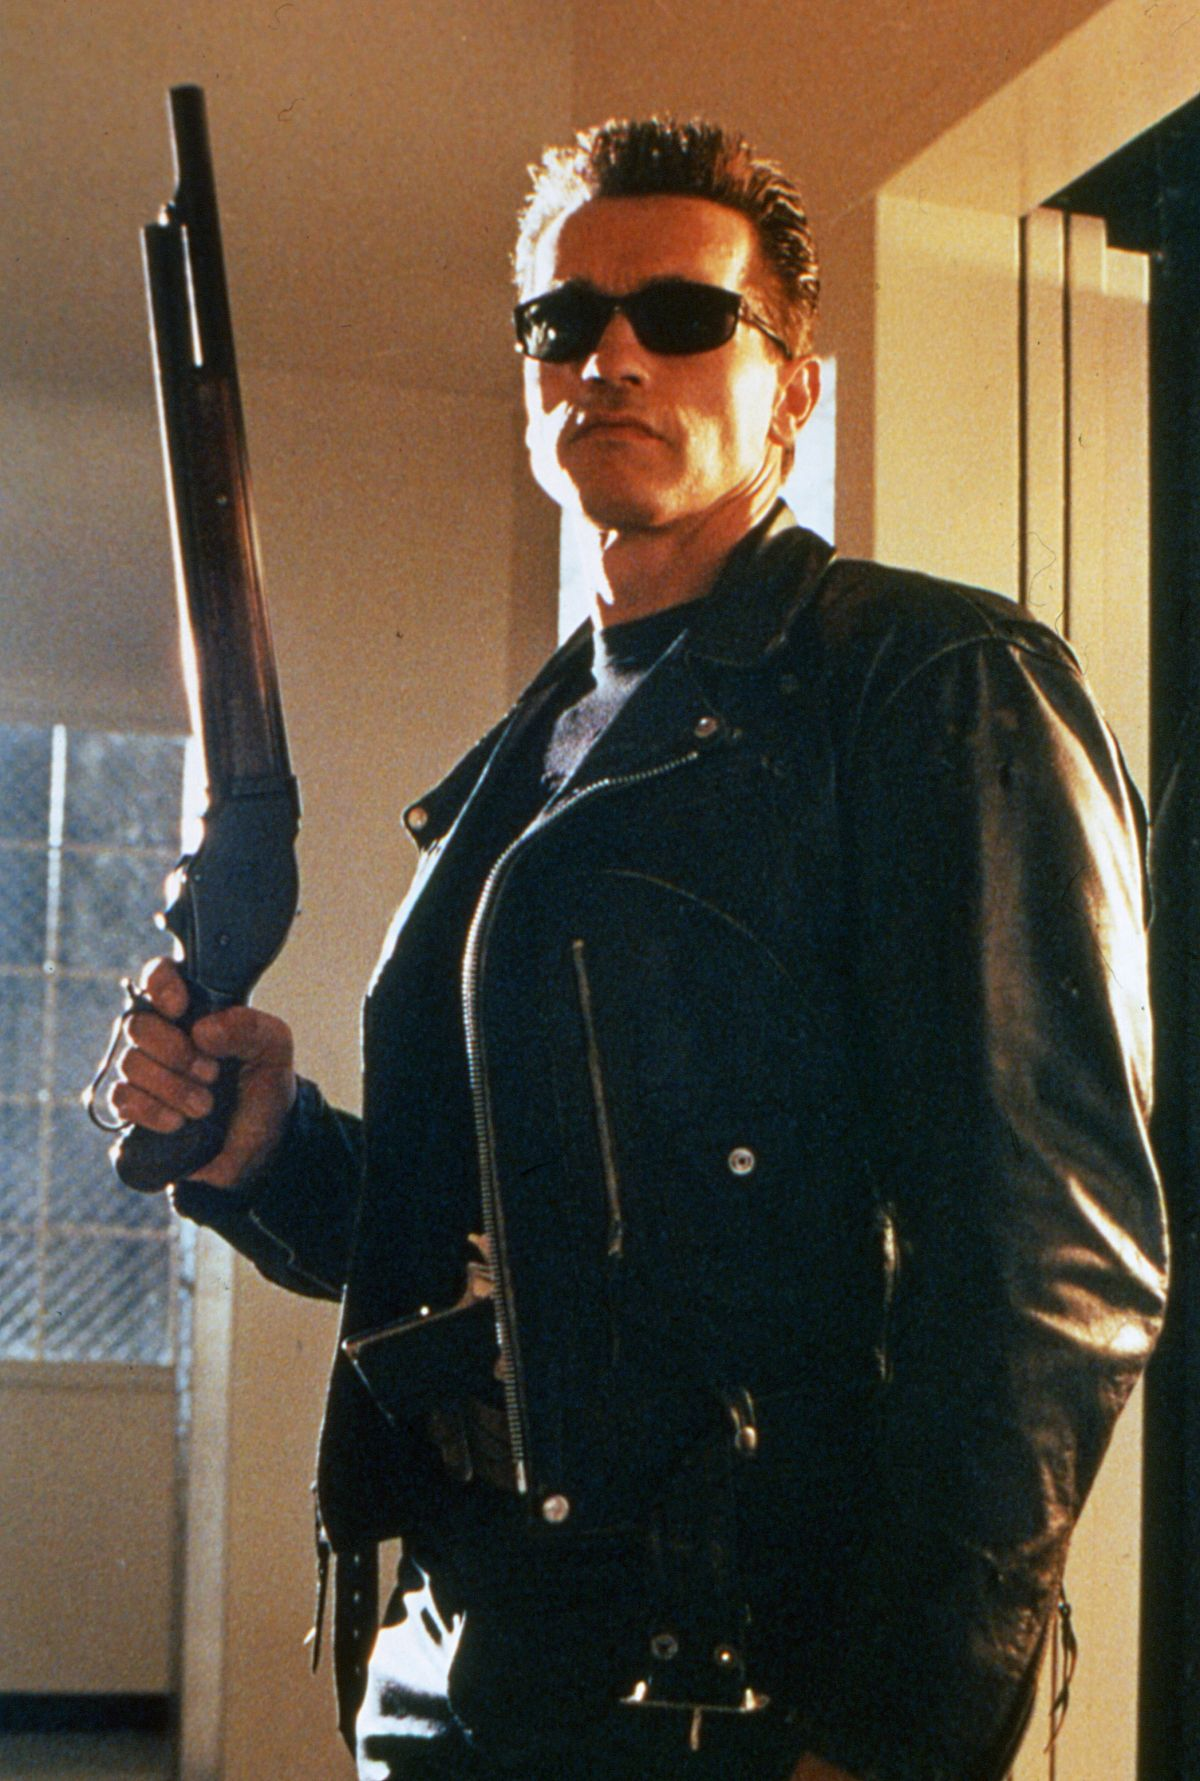 He's back: Arnold Schwarzenegger as the unstoppable Terminator.